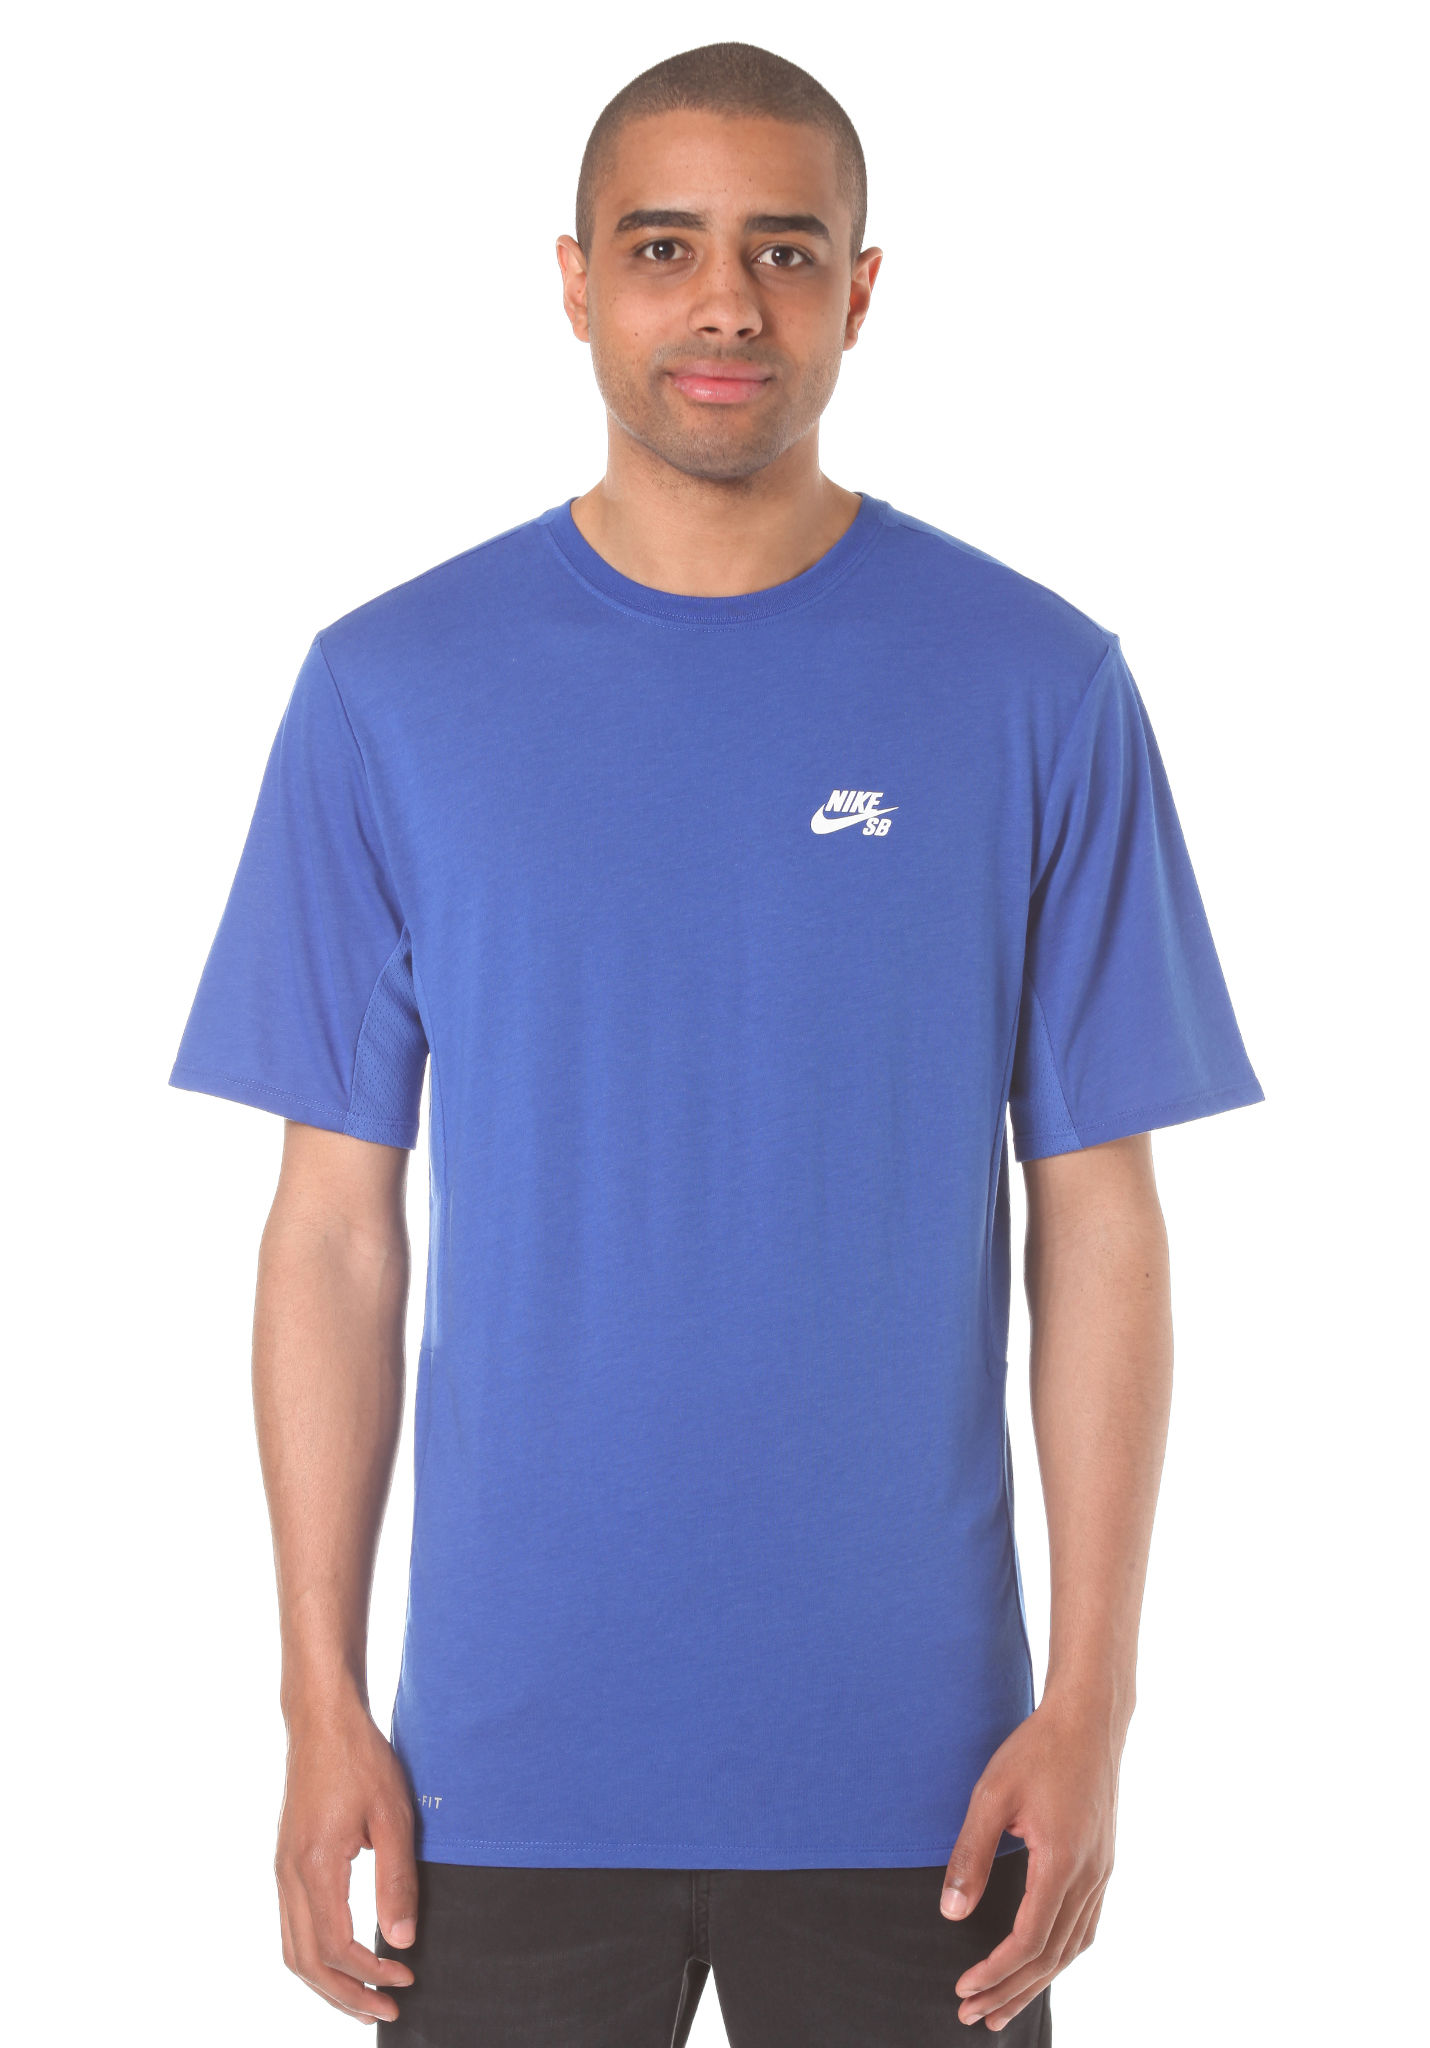 Skyline Nike T Planet Dri For Men Shirt Gfx Cool Sb Fit Blue r5fY1r